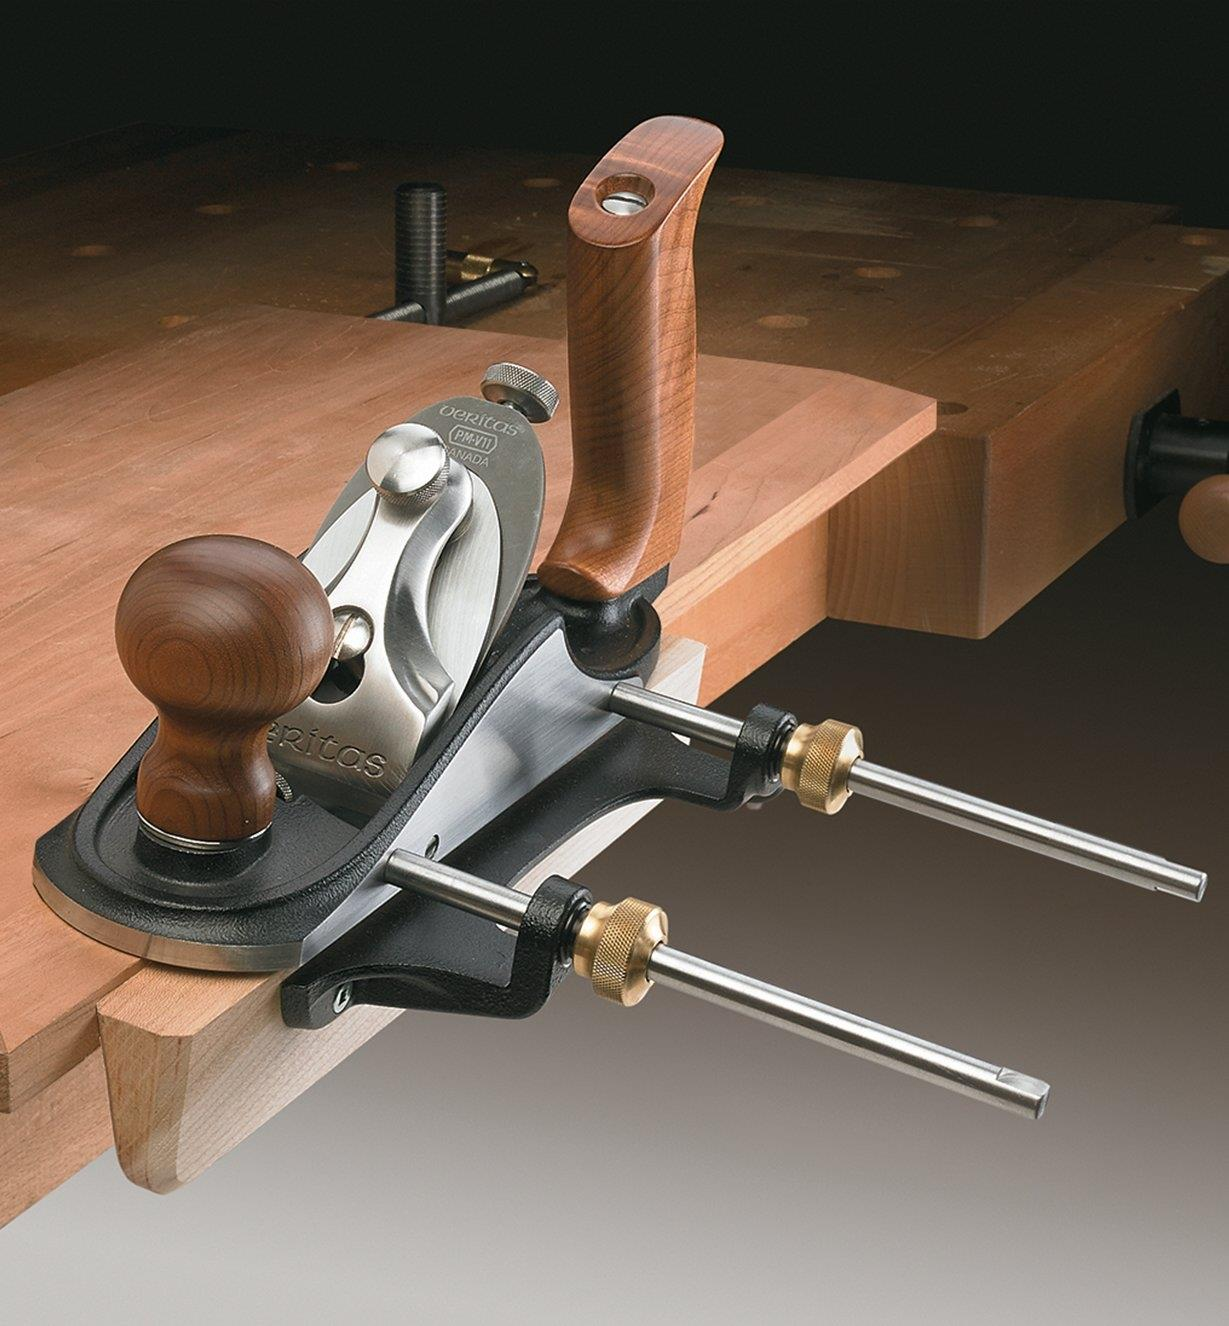 05P3020 - Plane Fence for Veritas Custom Bench Planes